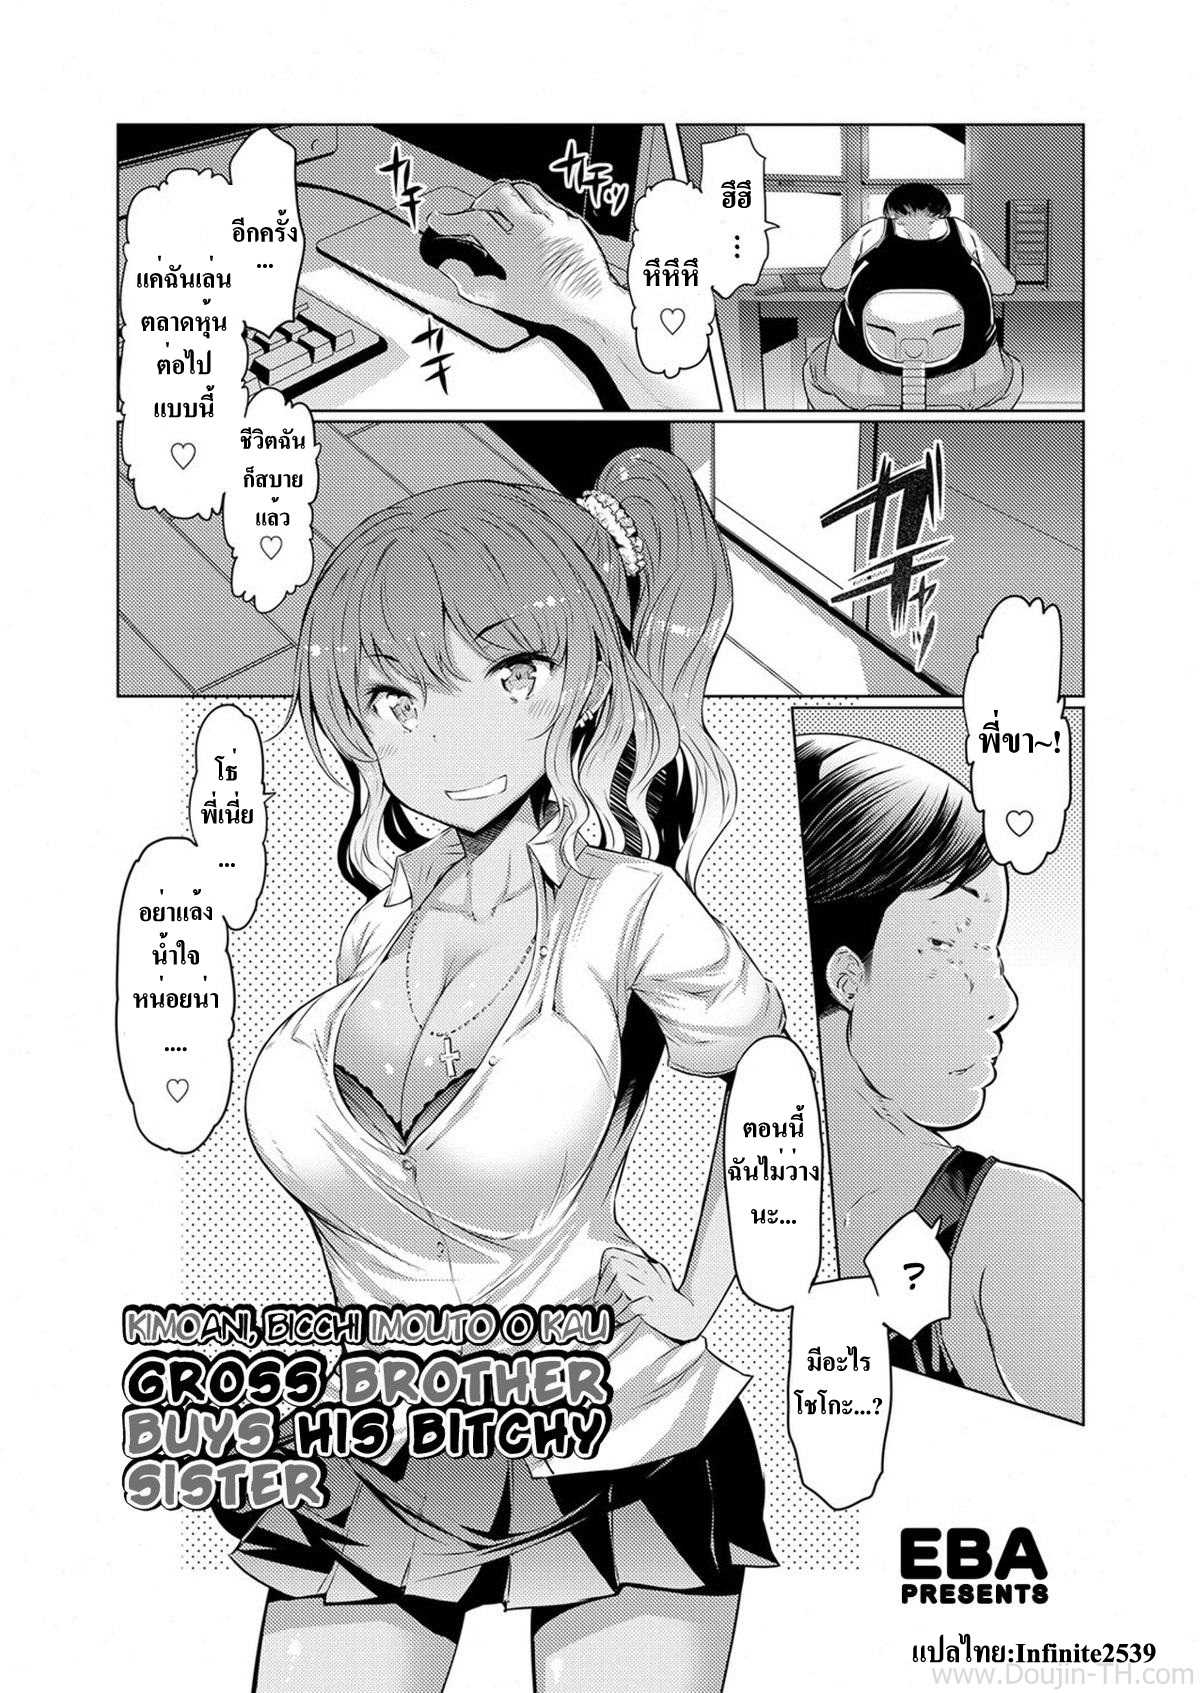 eba-kimoani-bitch-imouto-o-kau-gross-brother-buys-his-bitchy-sister-comic-grape-vol10